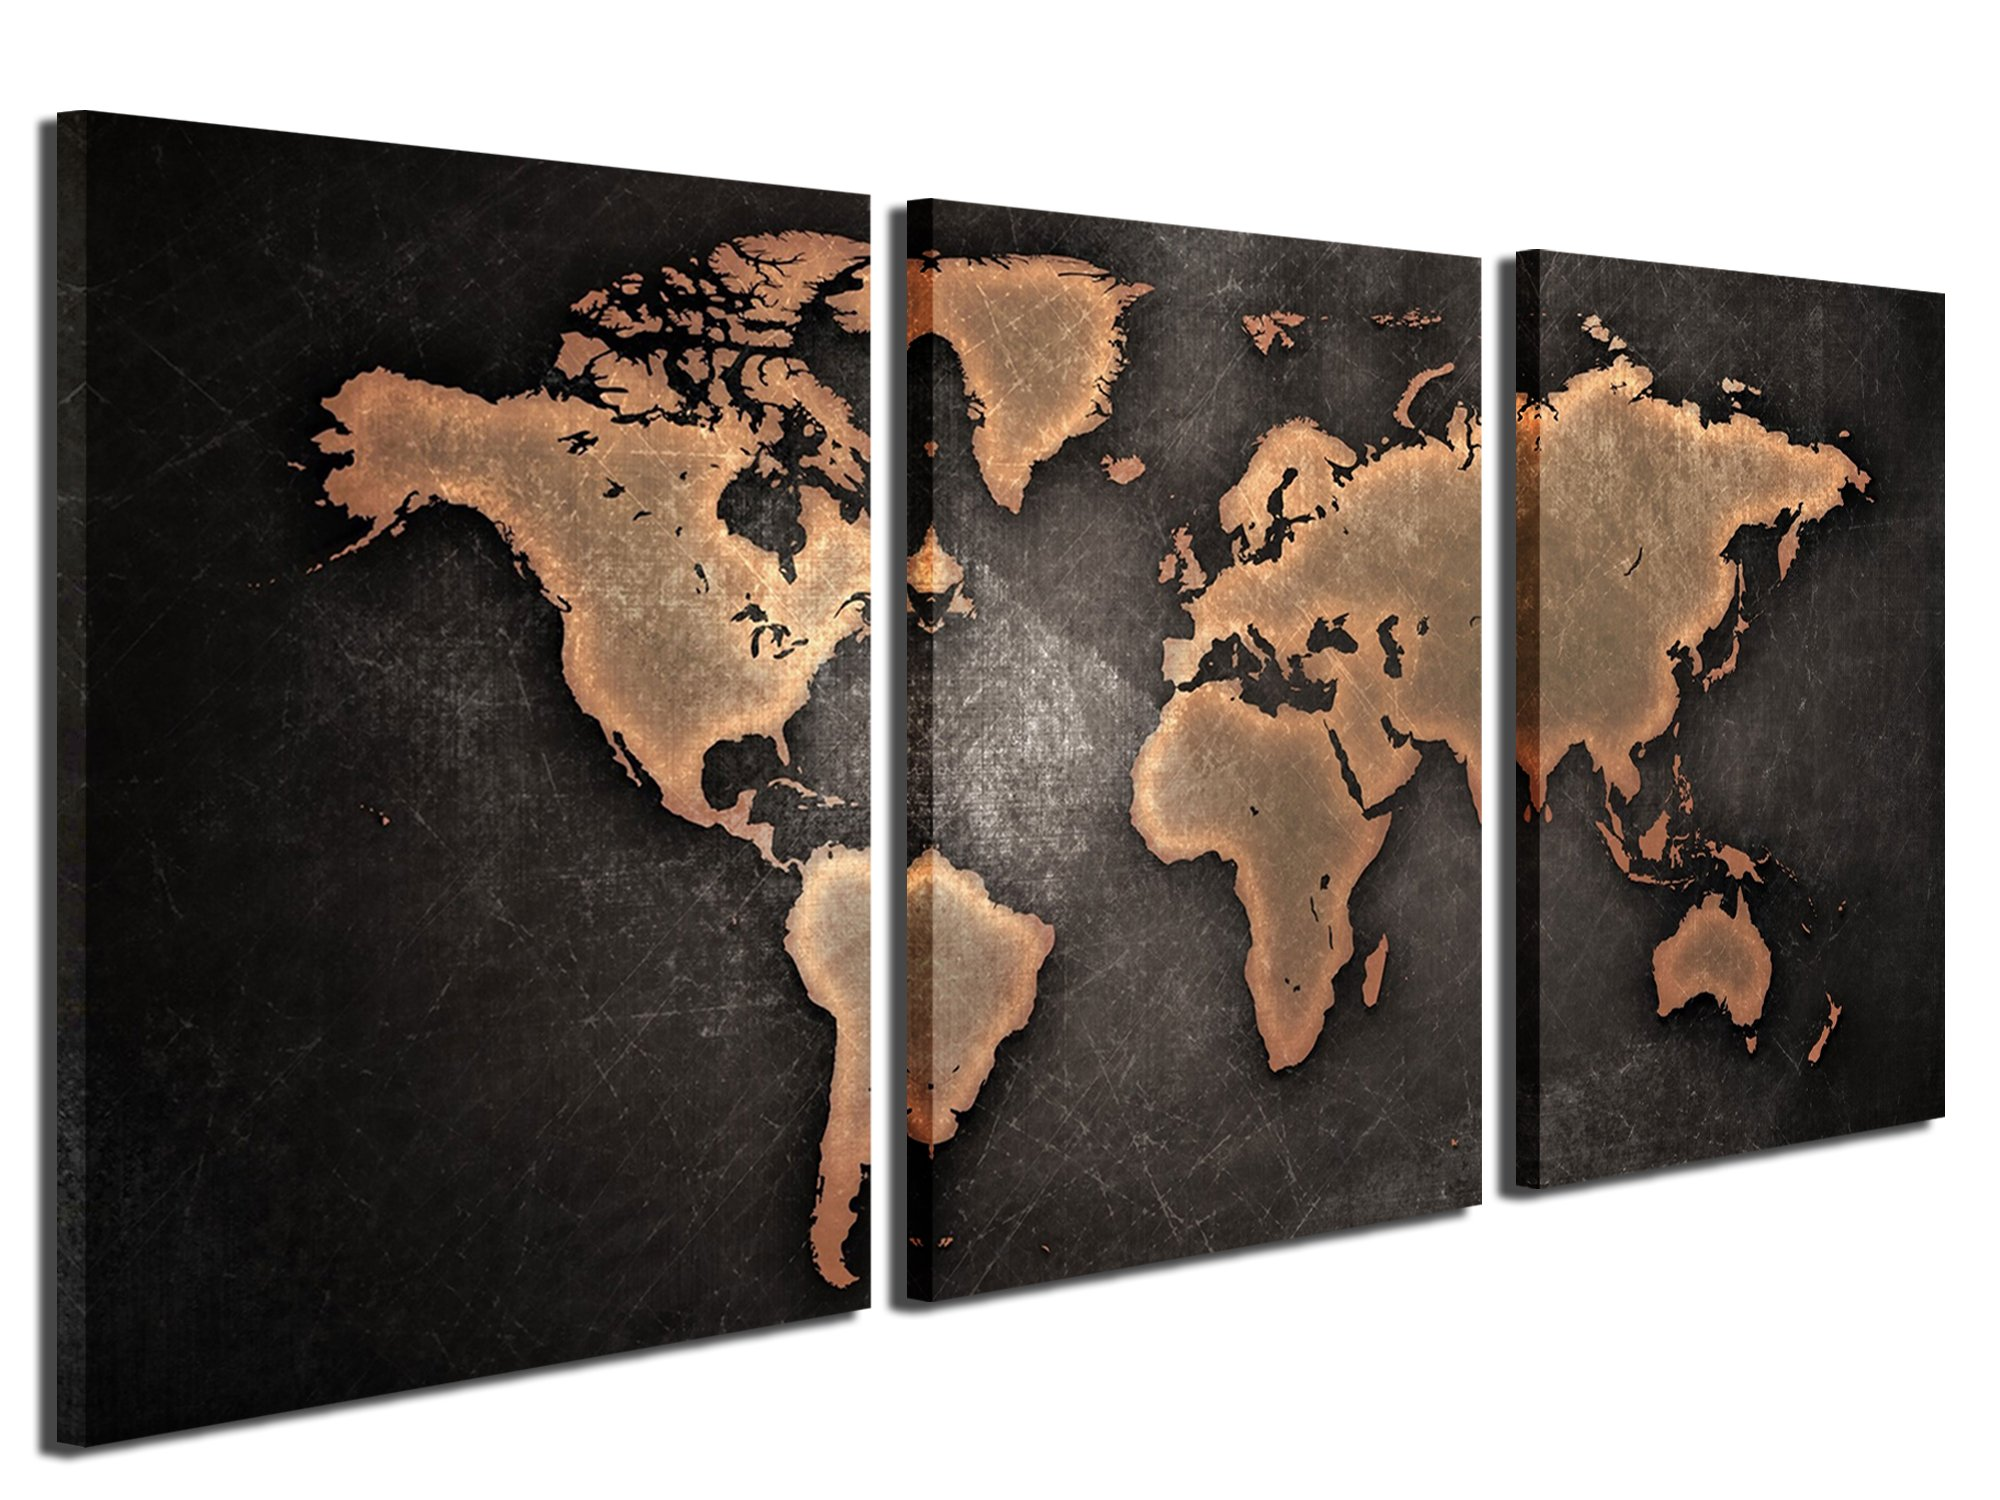 Gardenia Art - World Map Series 3 Canvas Prints Wall Art...